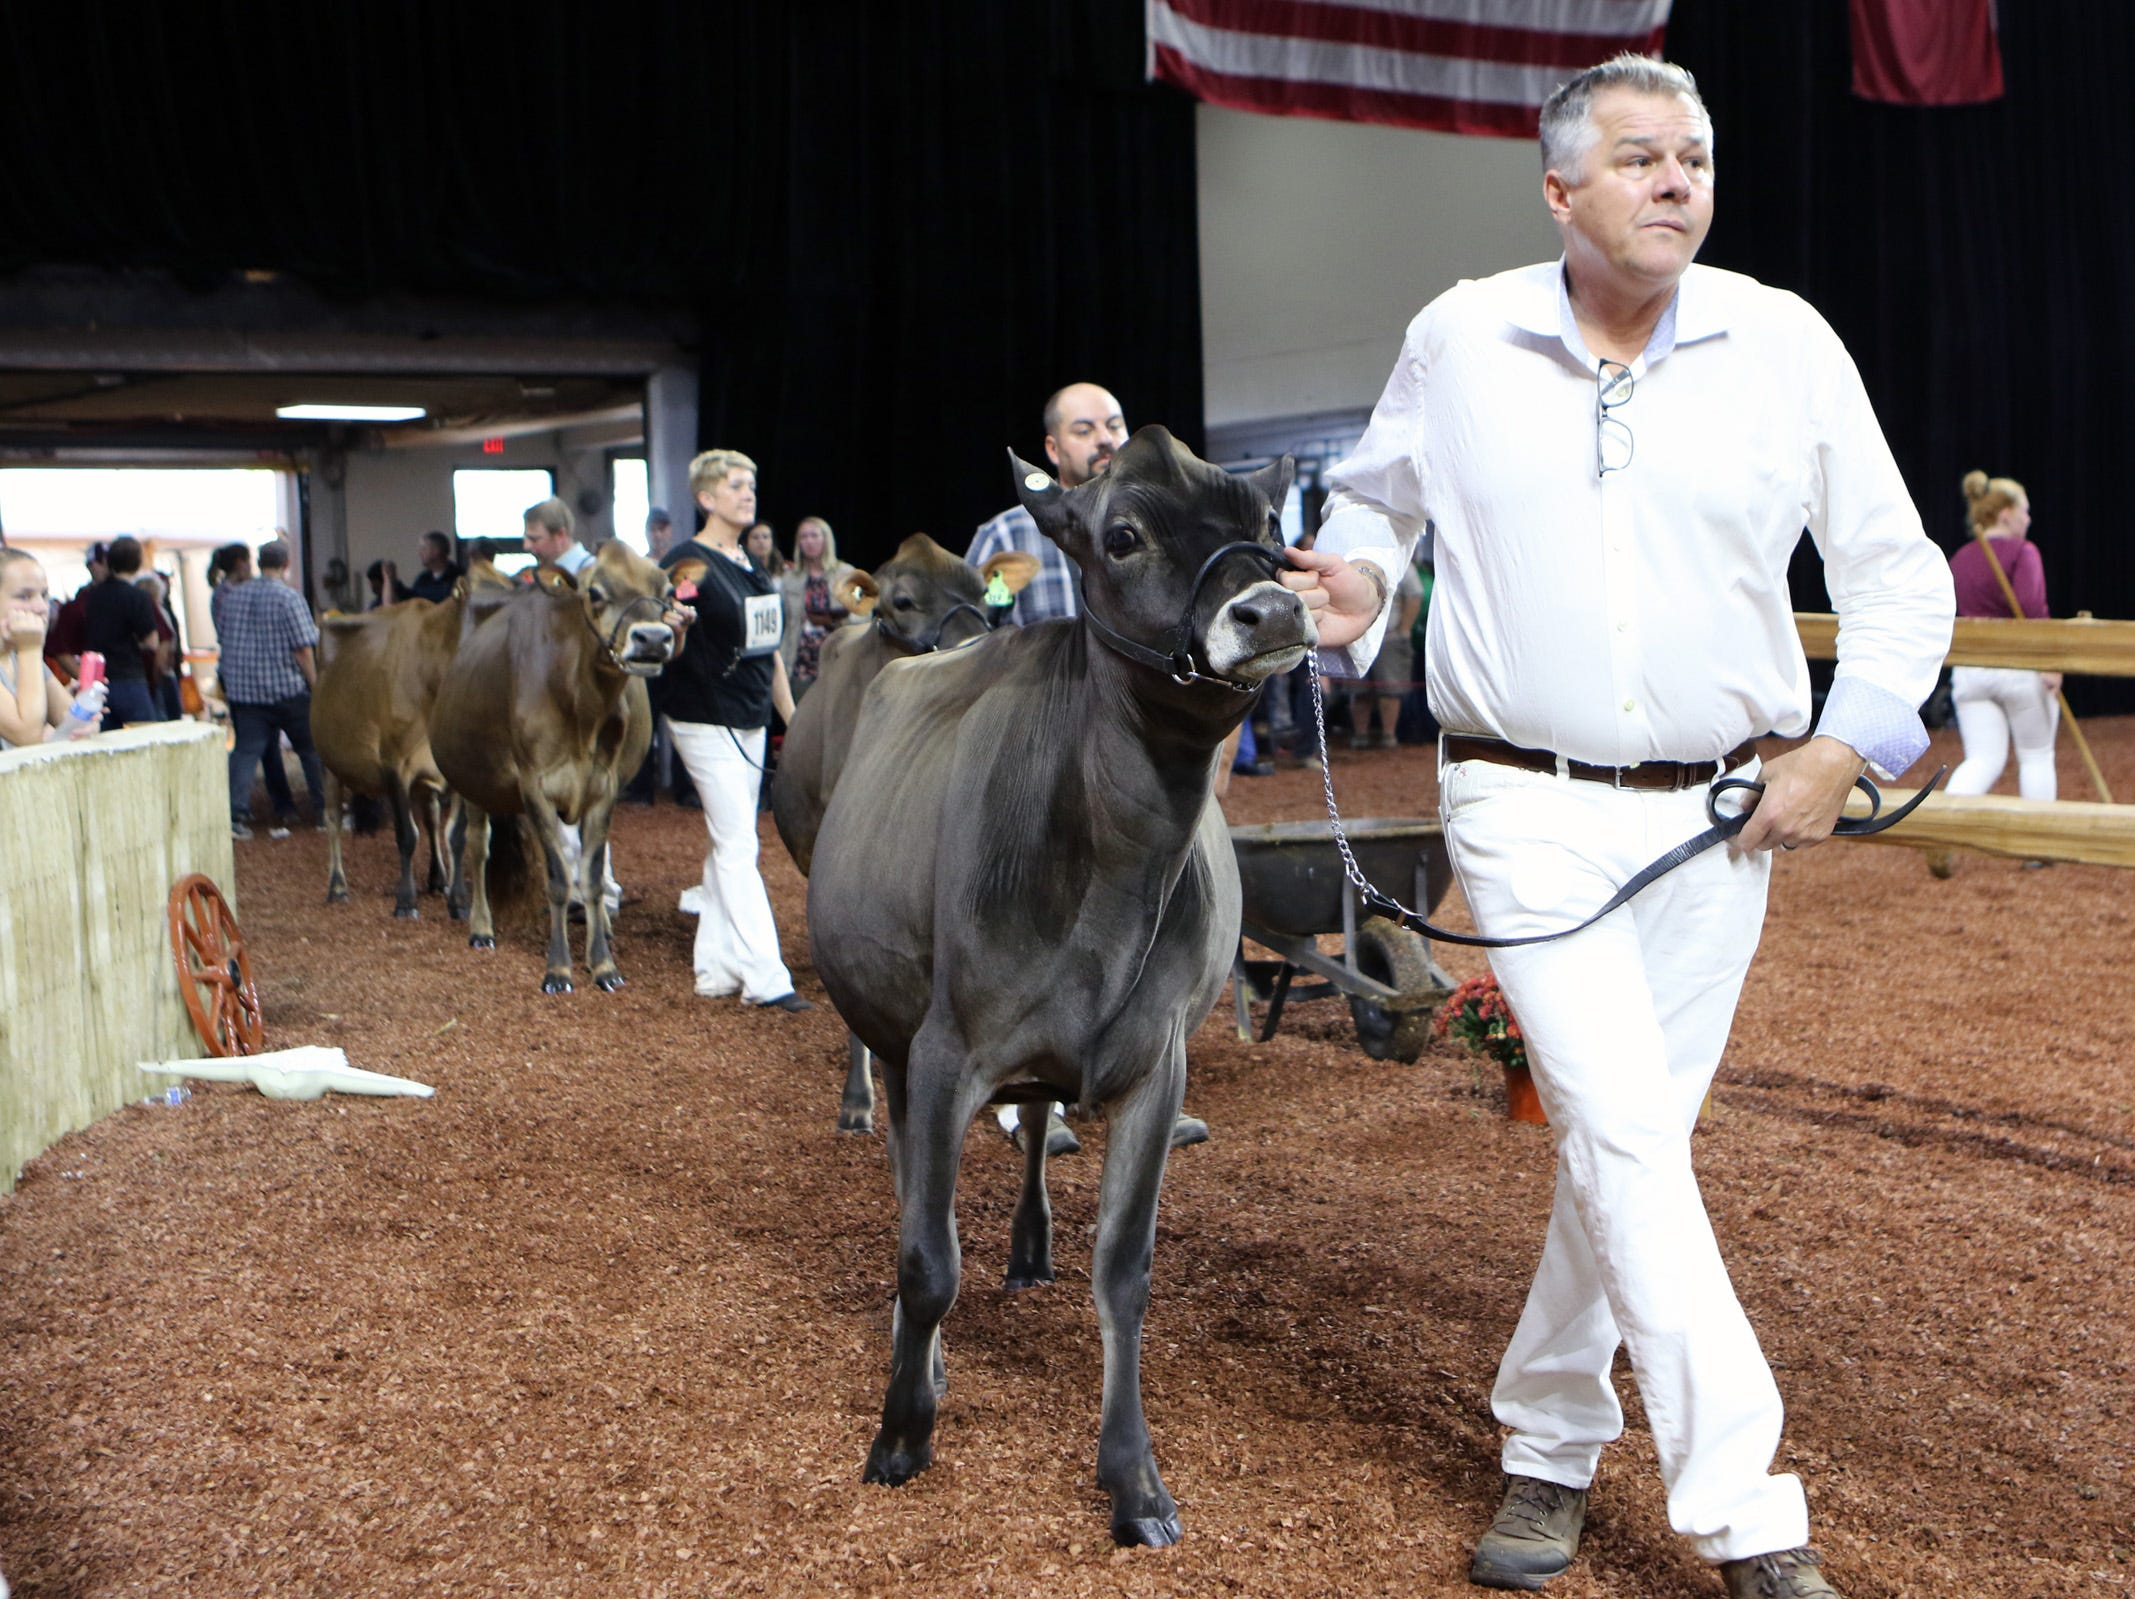 Heifers are lead into the ring for during World Dairy Expo on Oct. 3 in Madison.